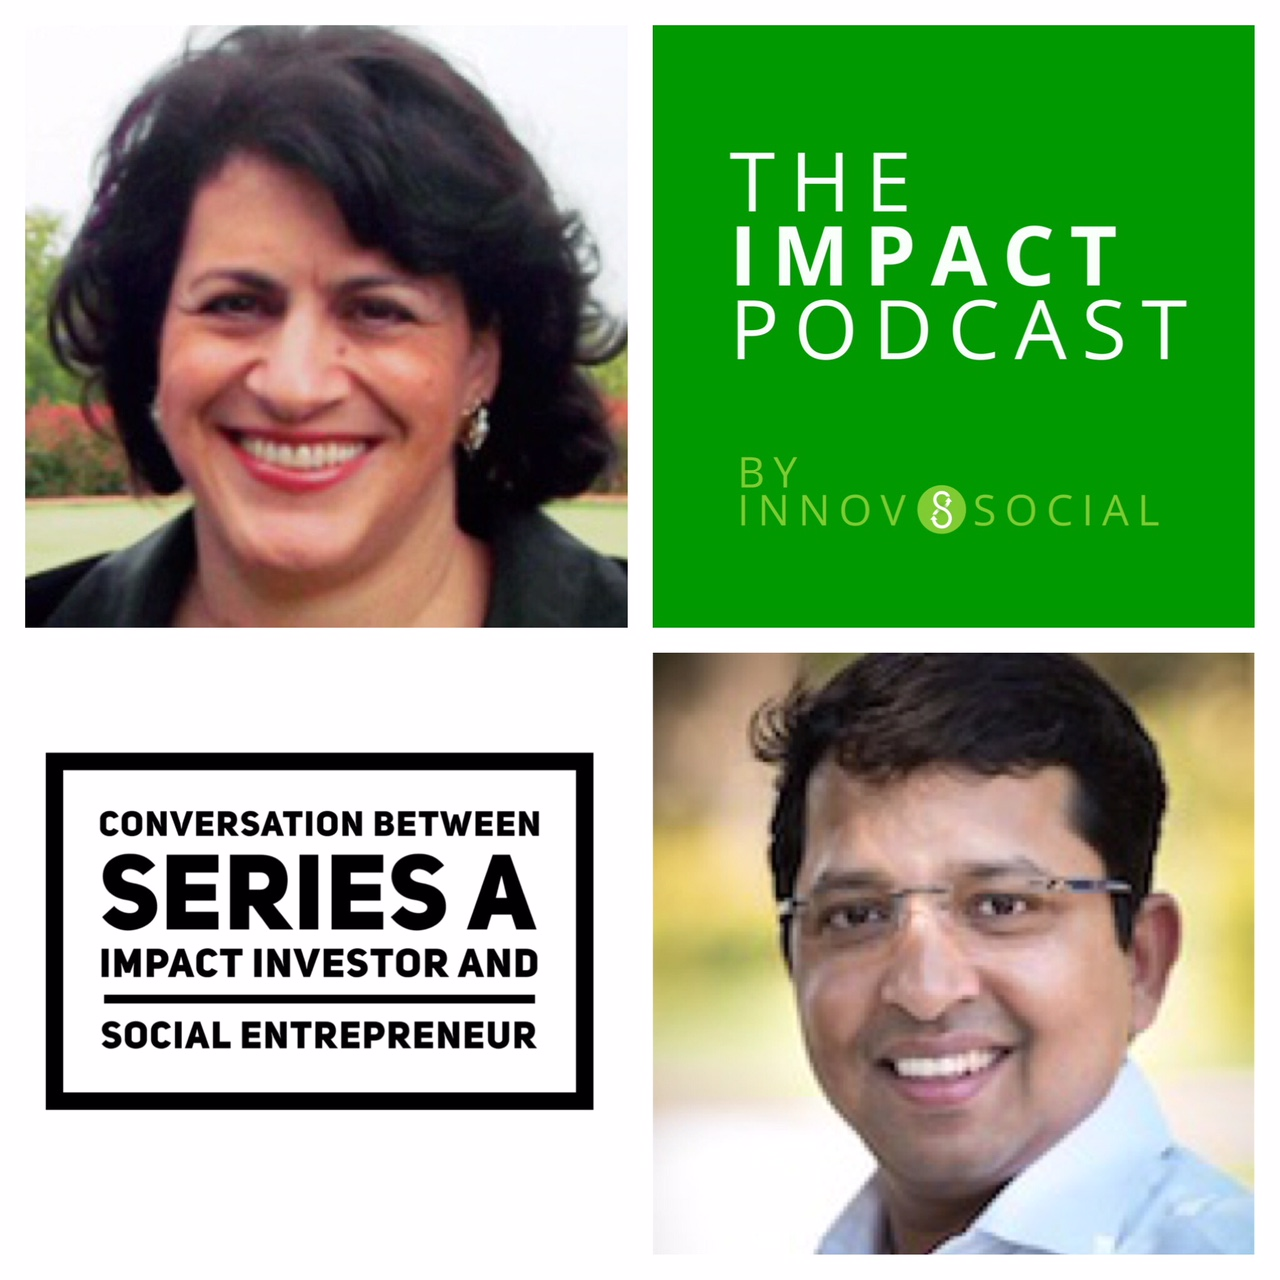 Series A Funder And Founder Conversation With Julie Abrams Sujay Santra